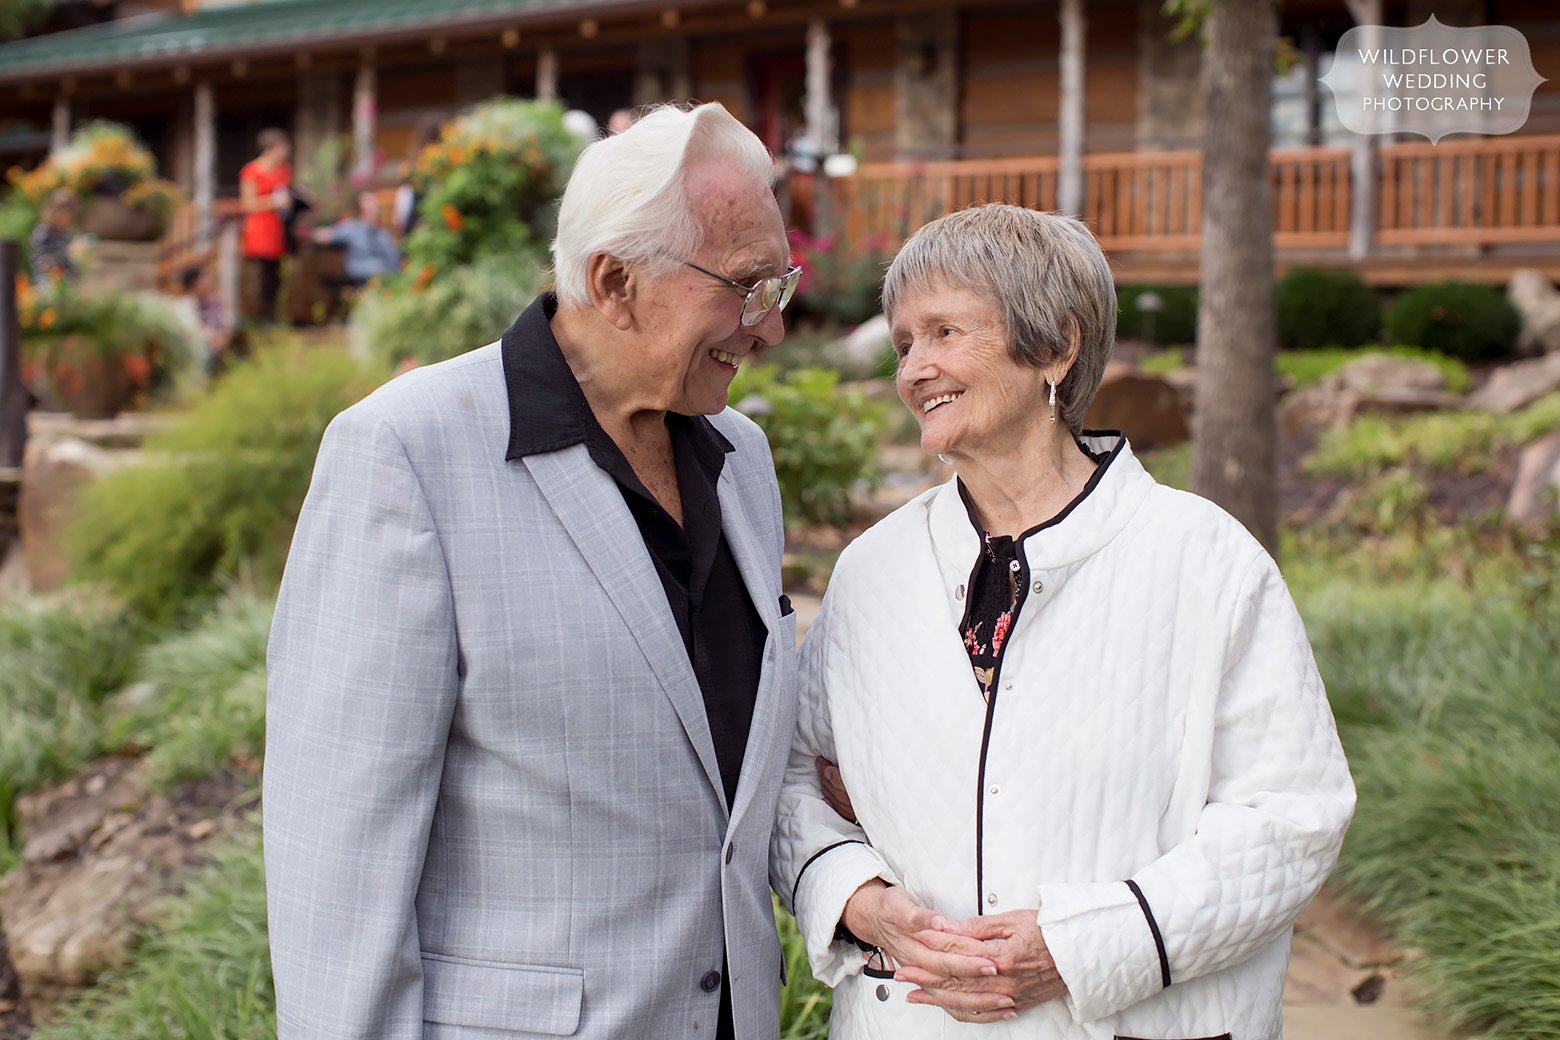 Old couple smiling at each other in Hermann, MO for wedding.